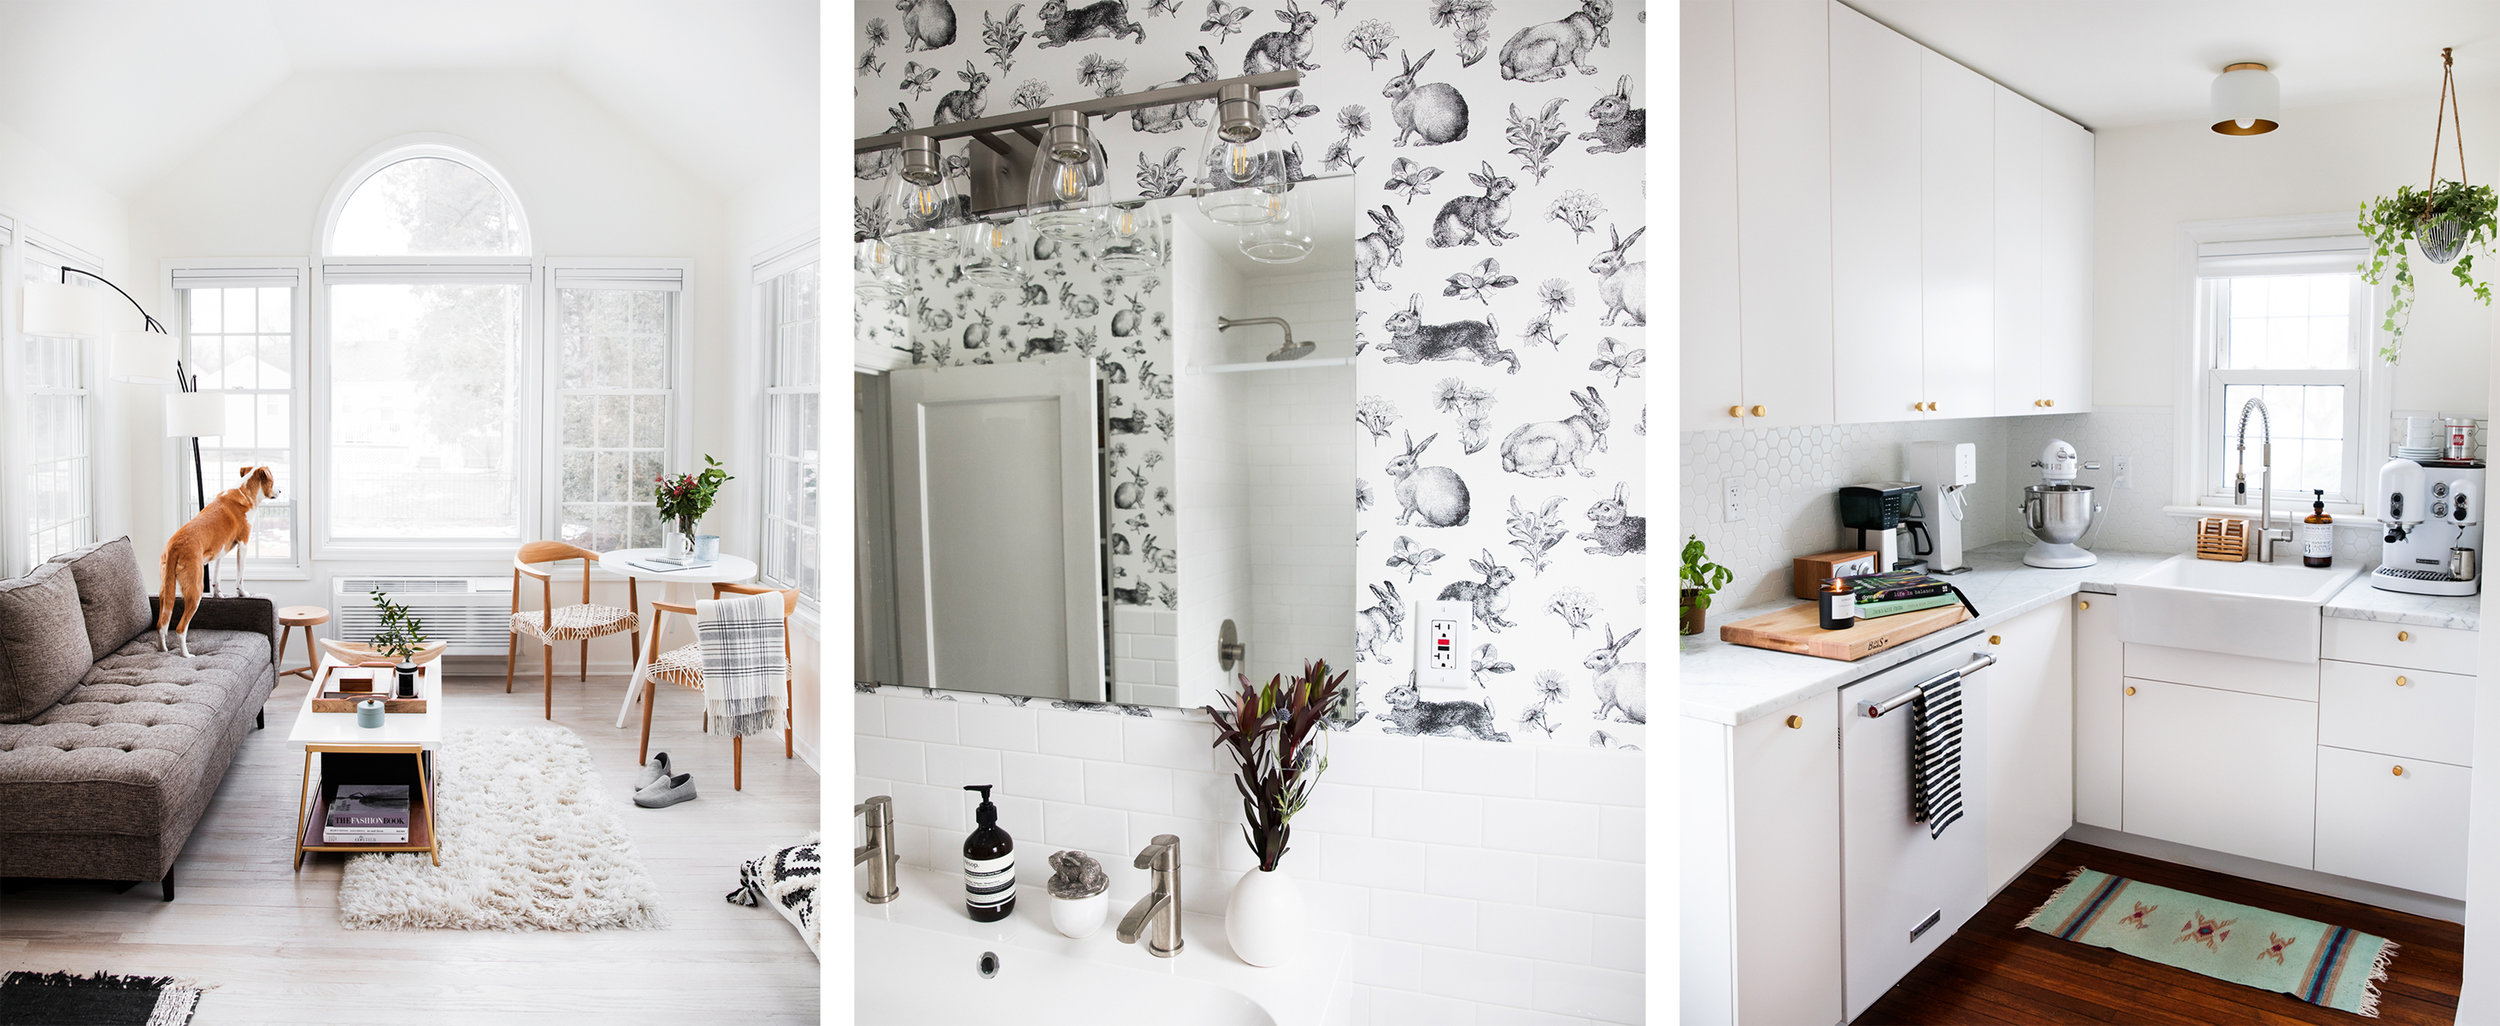 small space diary: - a Renovation Update